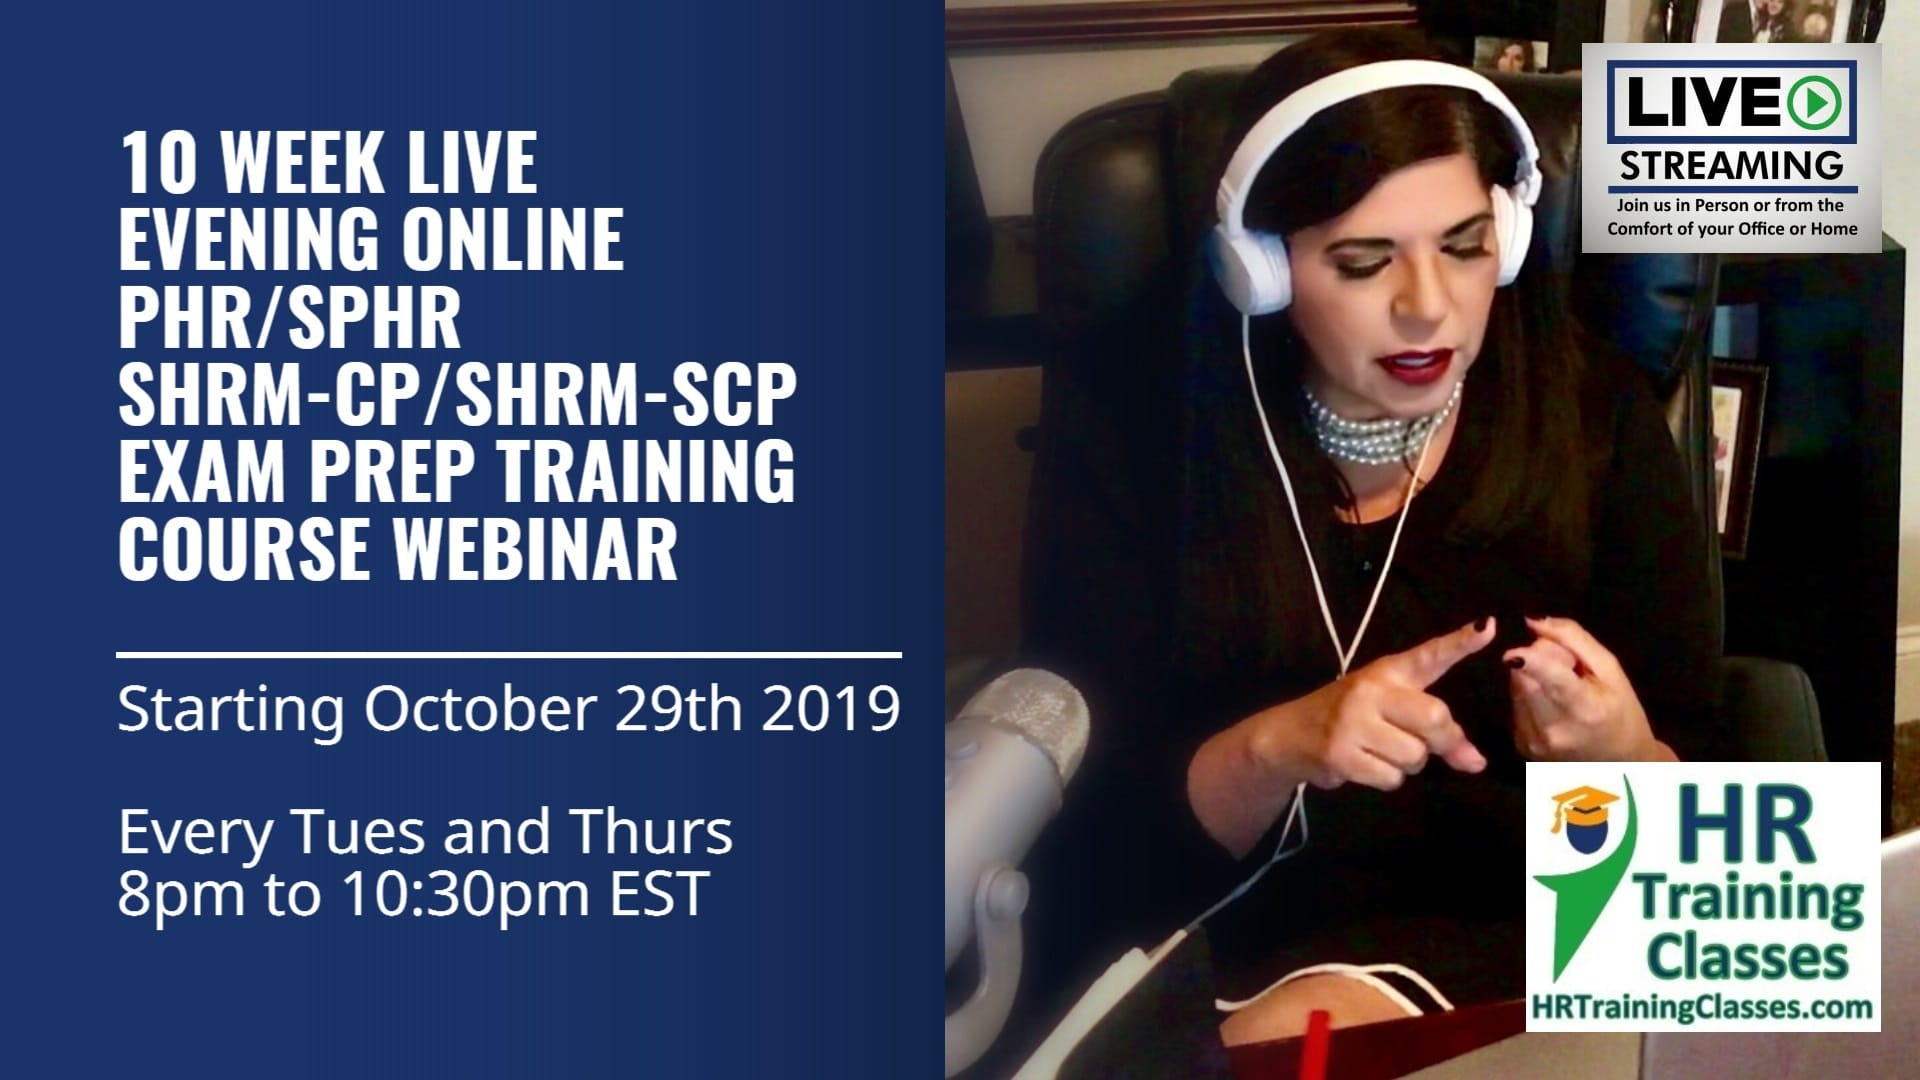 10 Week (50 Hrs) LIVE and Interactive Evening Online PHR, SPHR, SHRM-CP & SHRM-SCP Exam Prep Training Class Webcast Starting October 29 2019